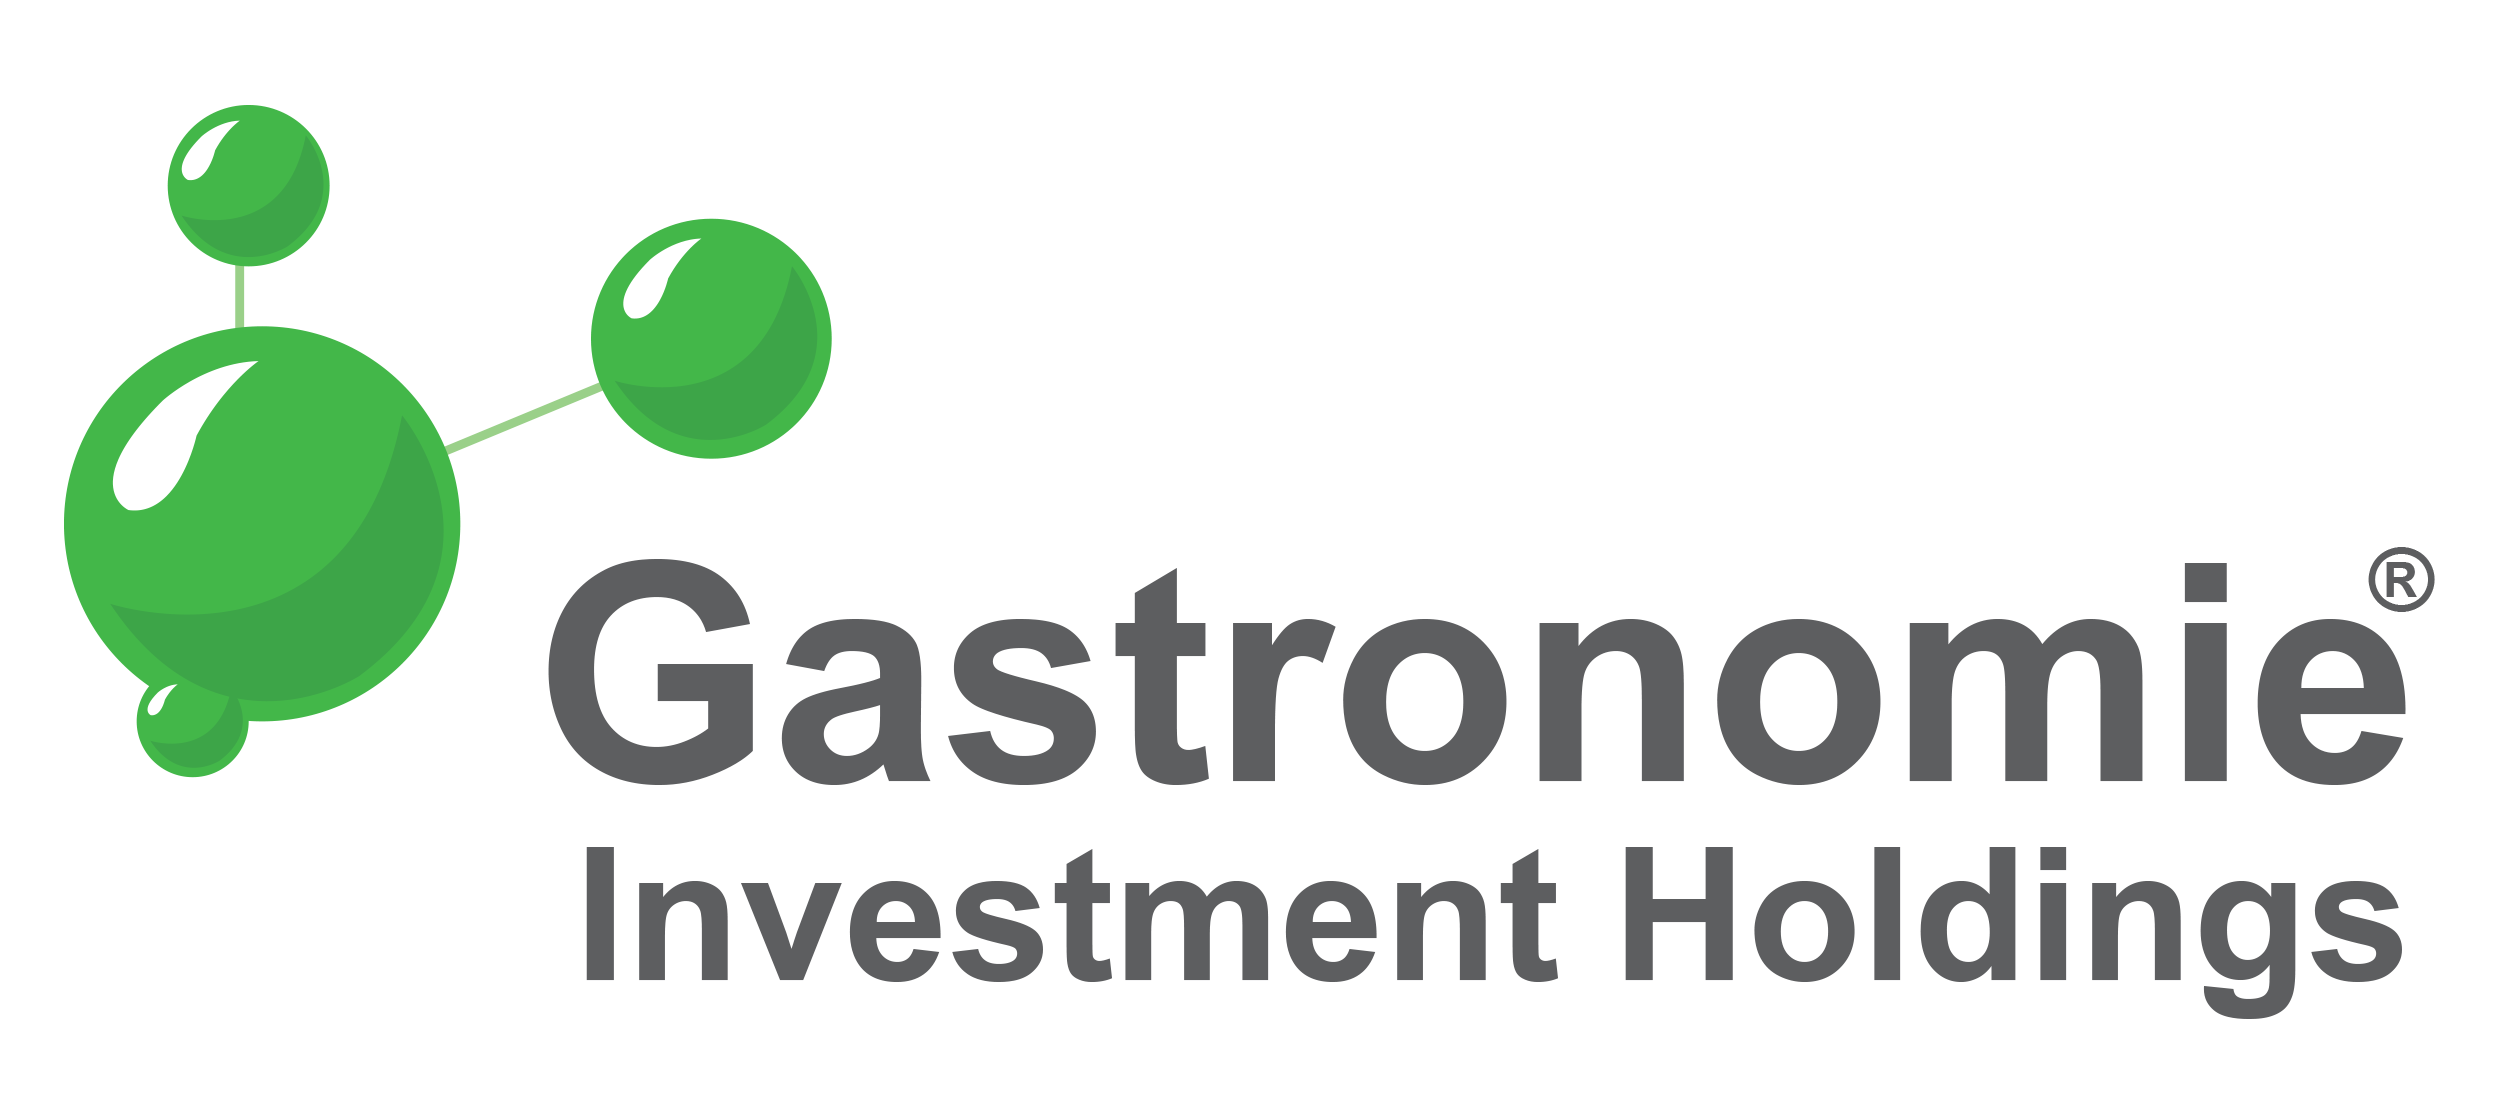 Gastronomie Investment Holdings